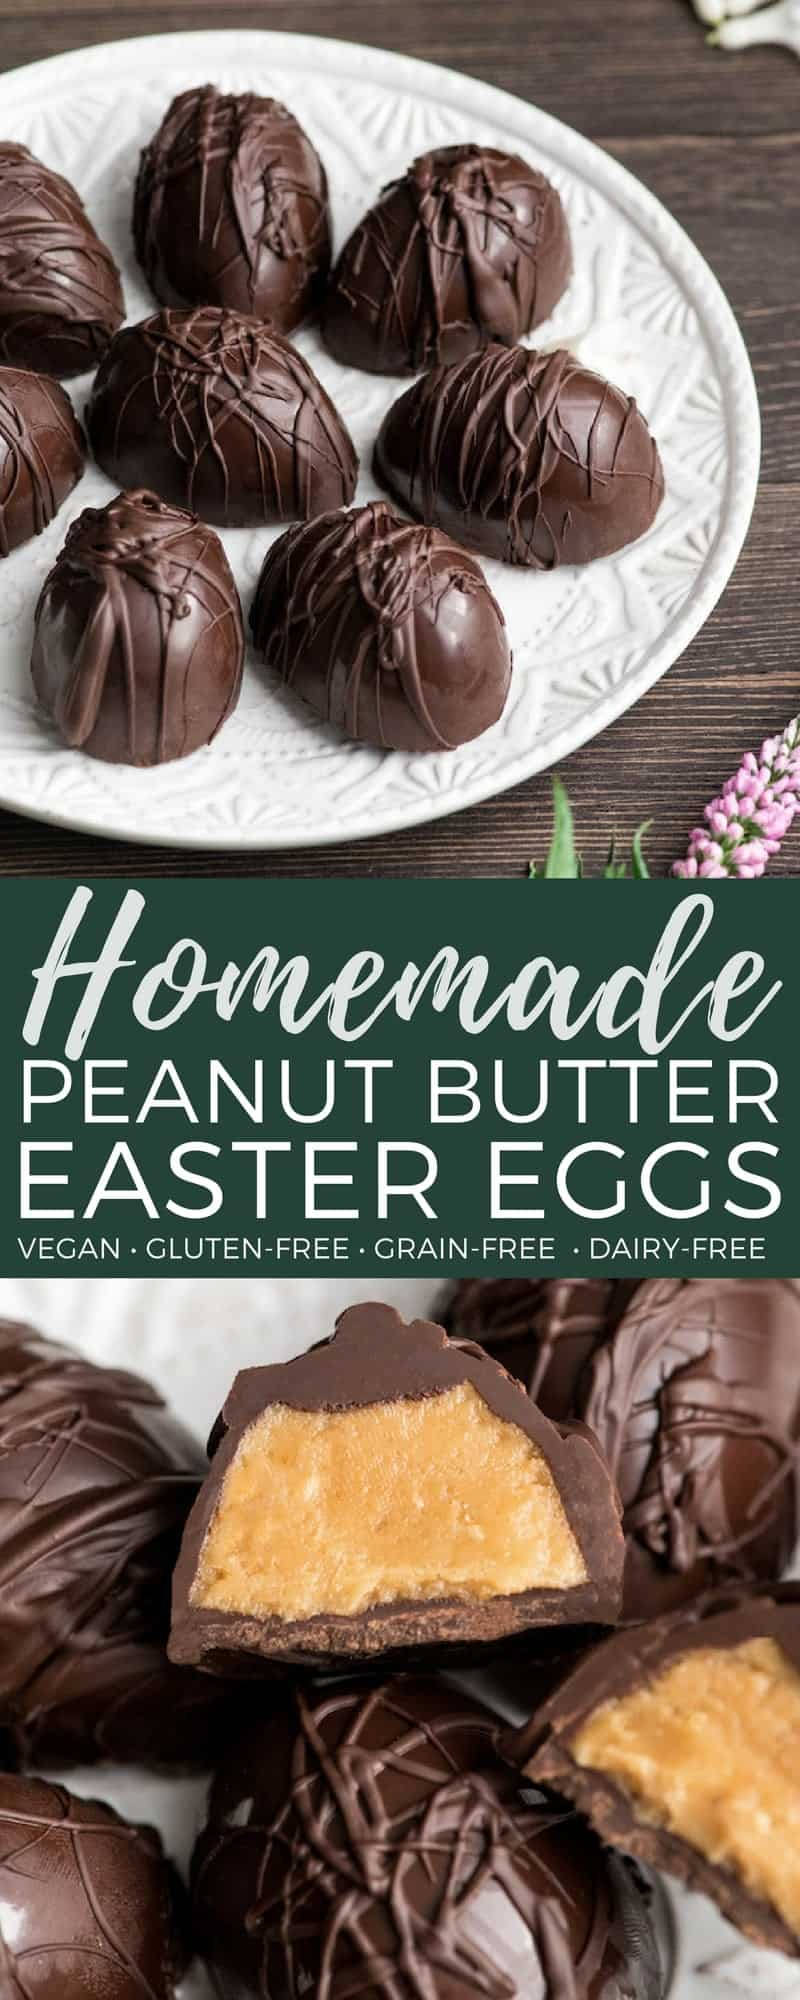 These homemade Vegan Peanut Butter Eggs are made with only 7 ingredients and are WAY tastier than any store-bought Easter candy! Plus they are gluten-free, dairy-free & vegan! #vegan #peanutbuttereggs #peanutbutter #easter #candy #chocolate #dessert #glutenfree #dairyfree